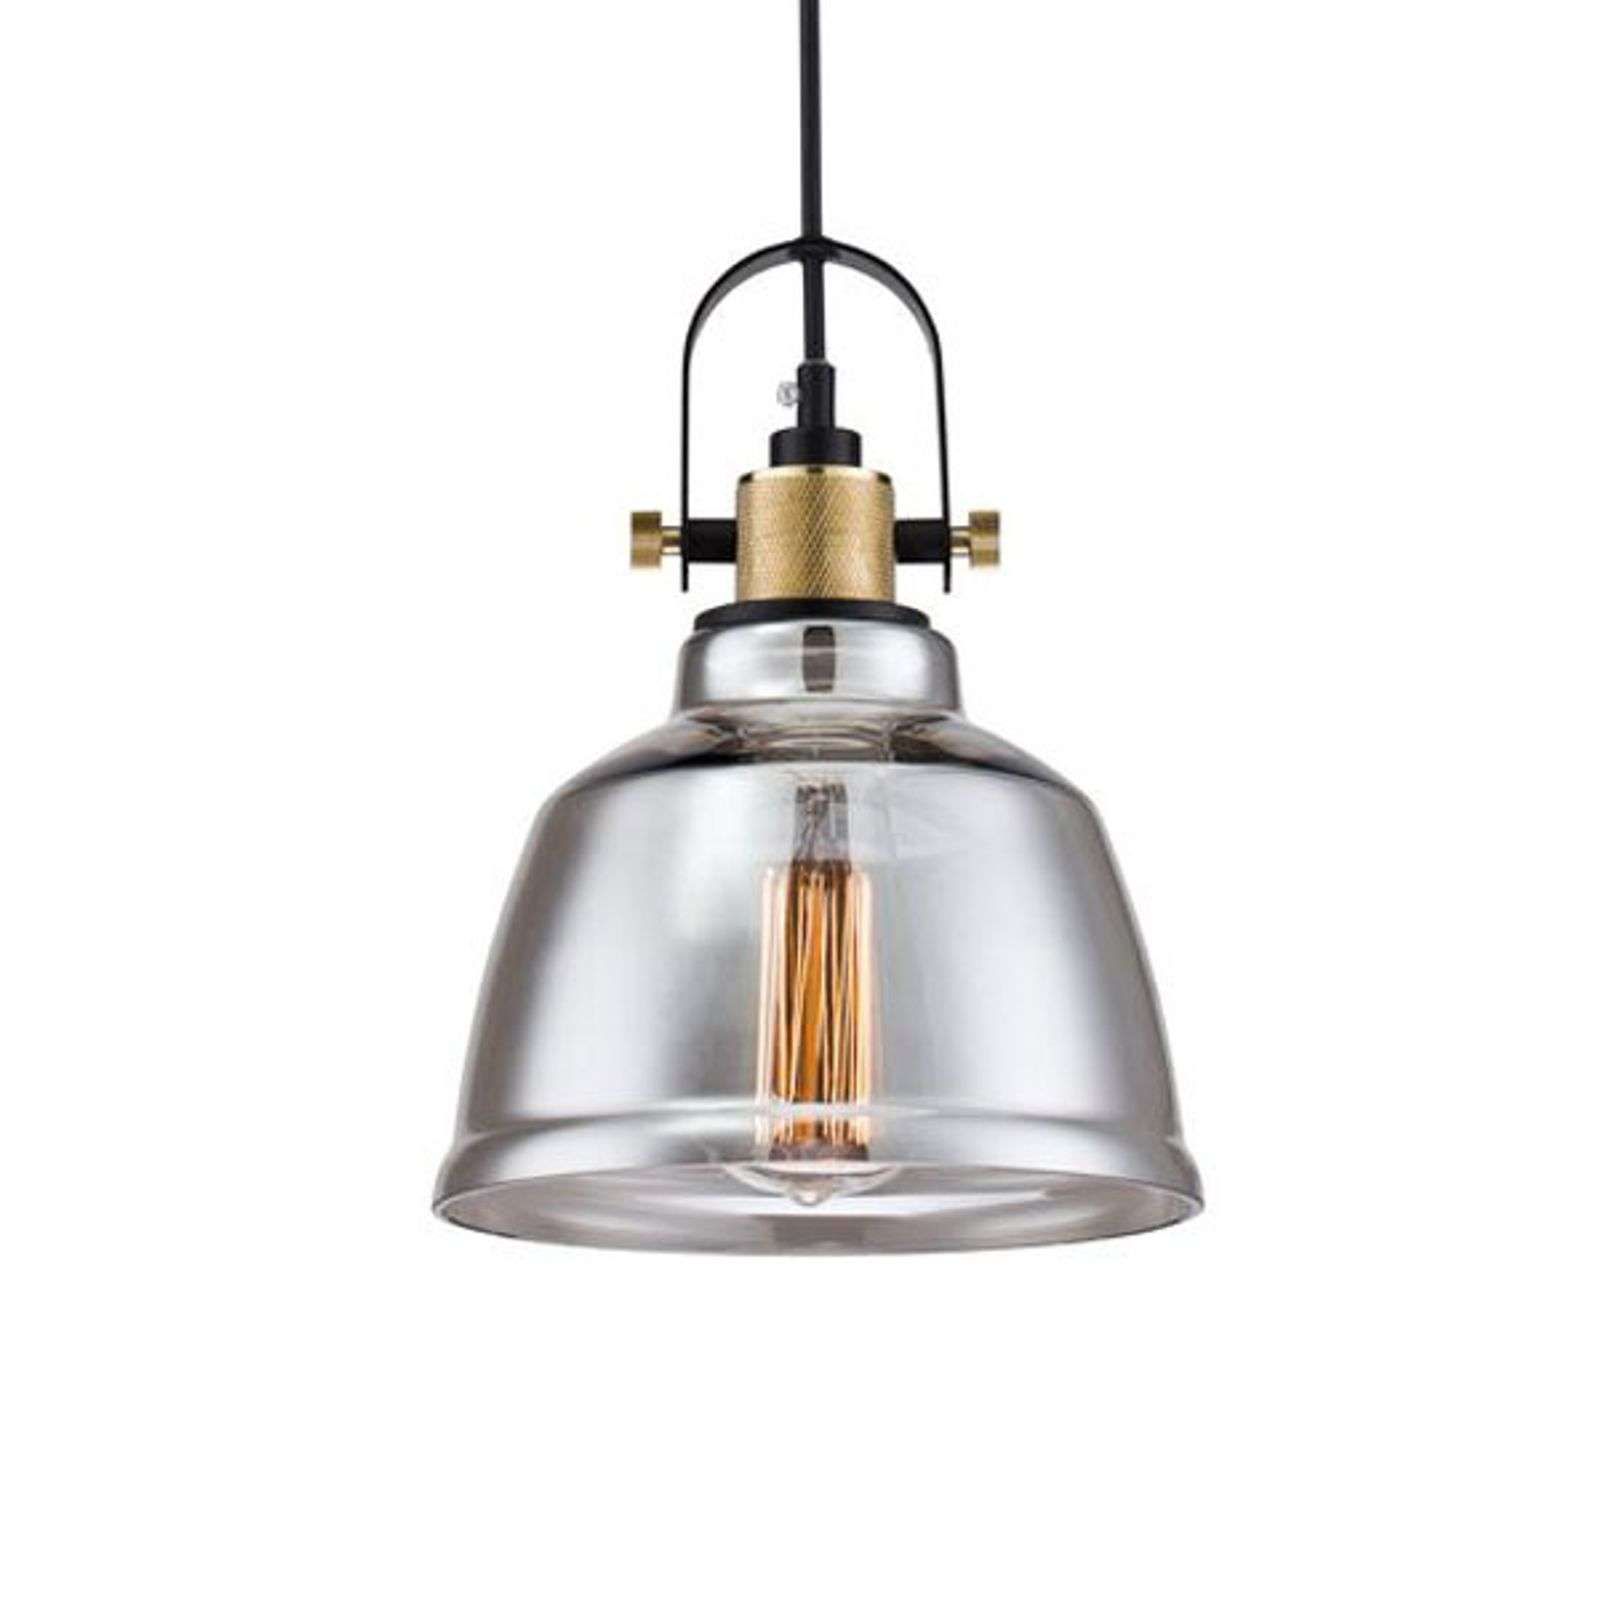 Suspension vintage Irving en verre